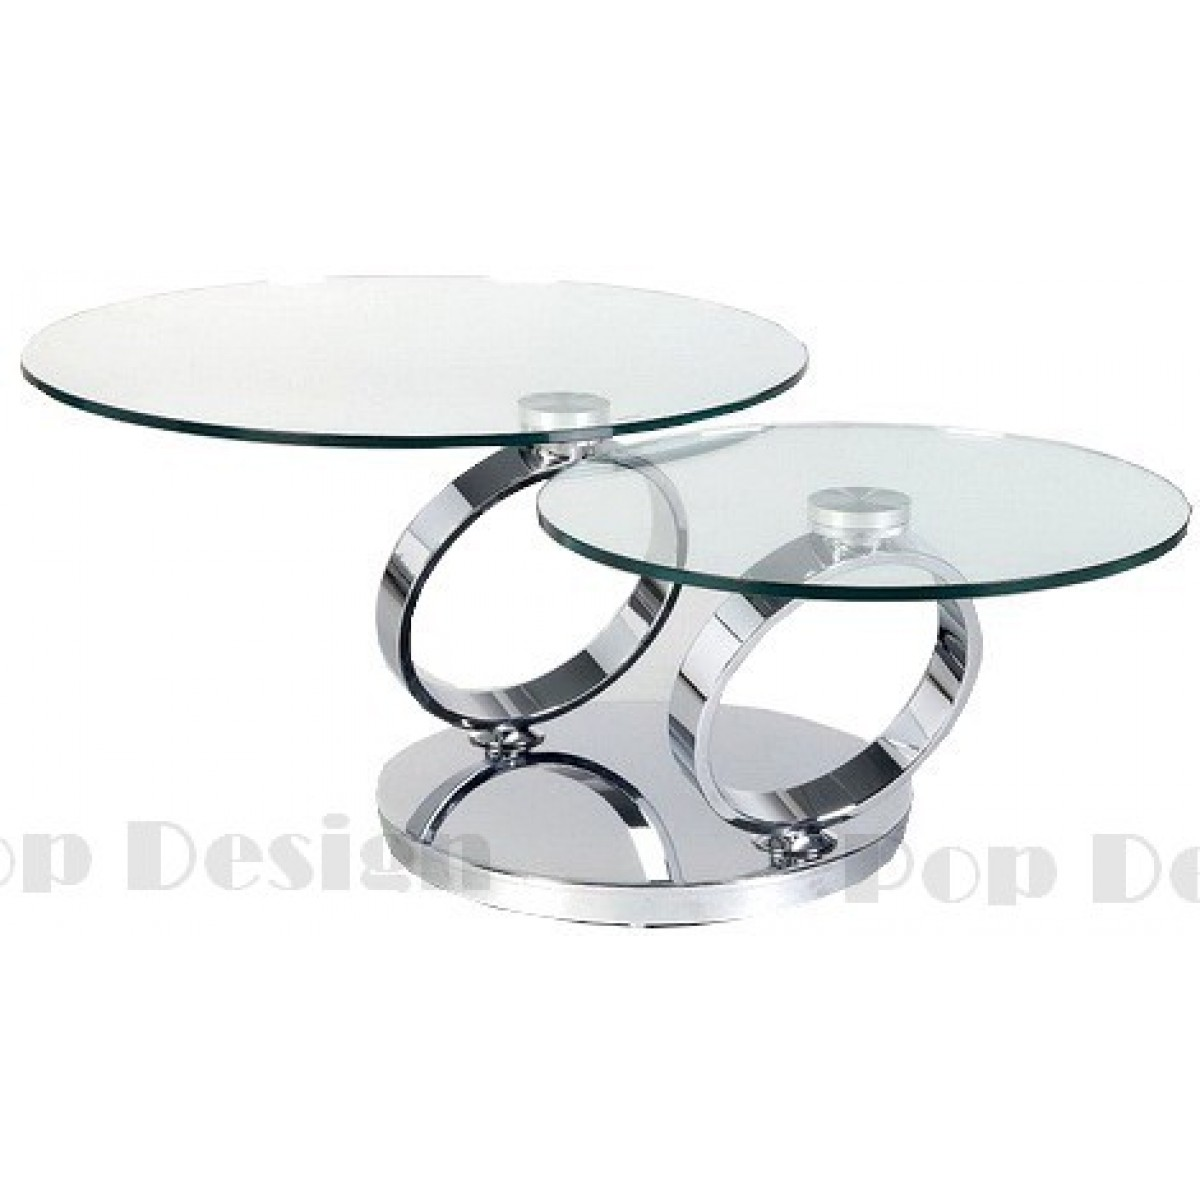 table basse ronde pivotante basilos socle inox effet miroir pop. Black Bedroom Furniture Sets. Home Design Ideas